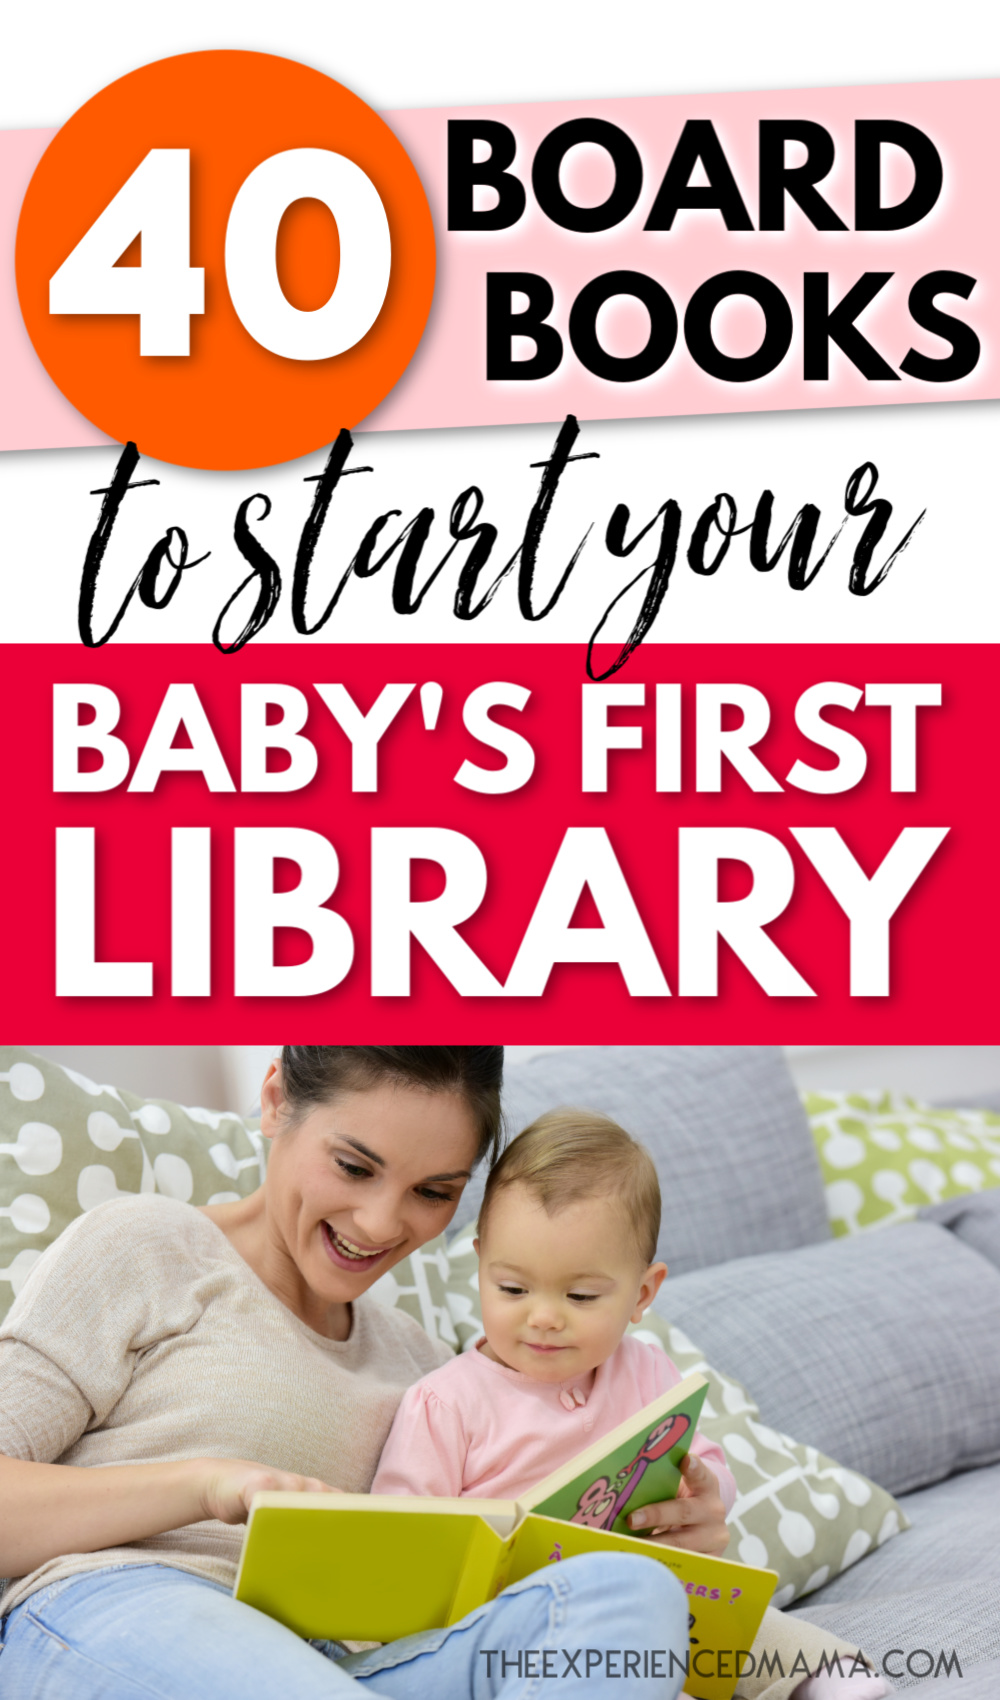 new mom reading board book to baby